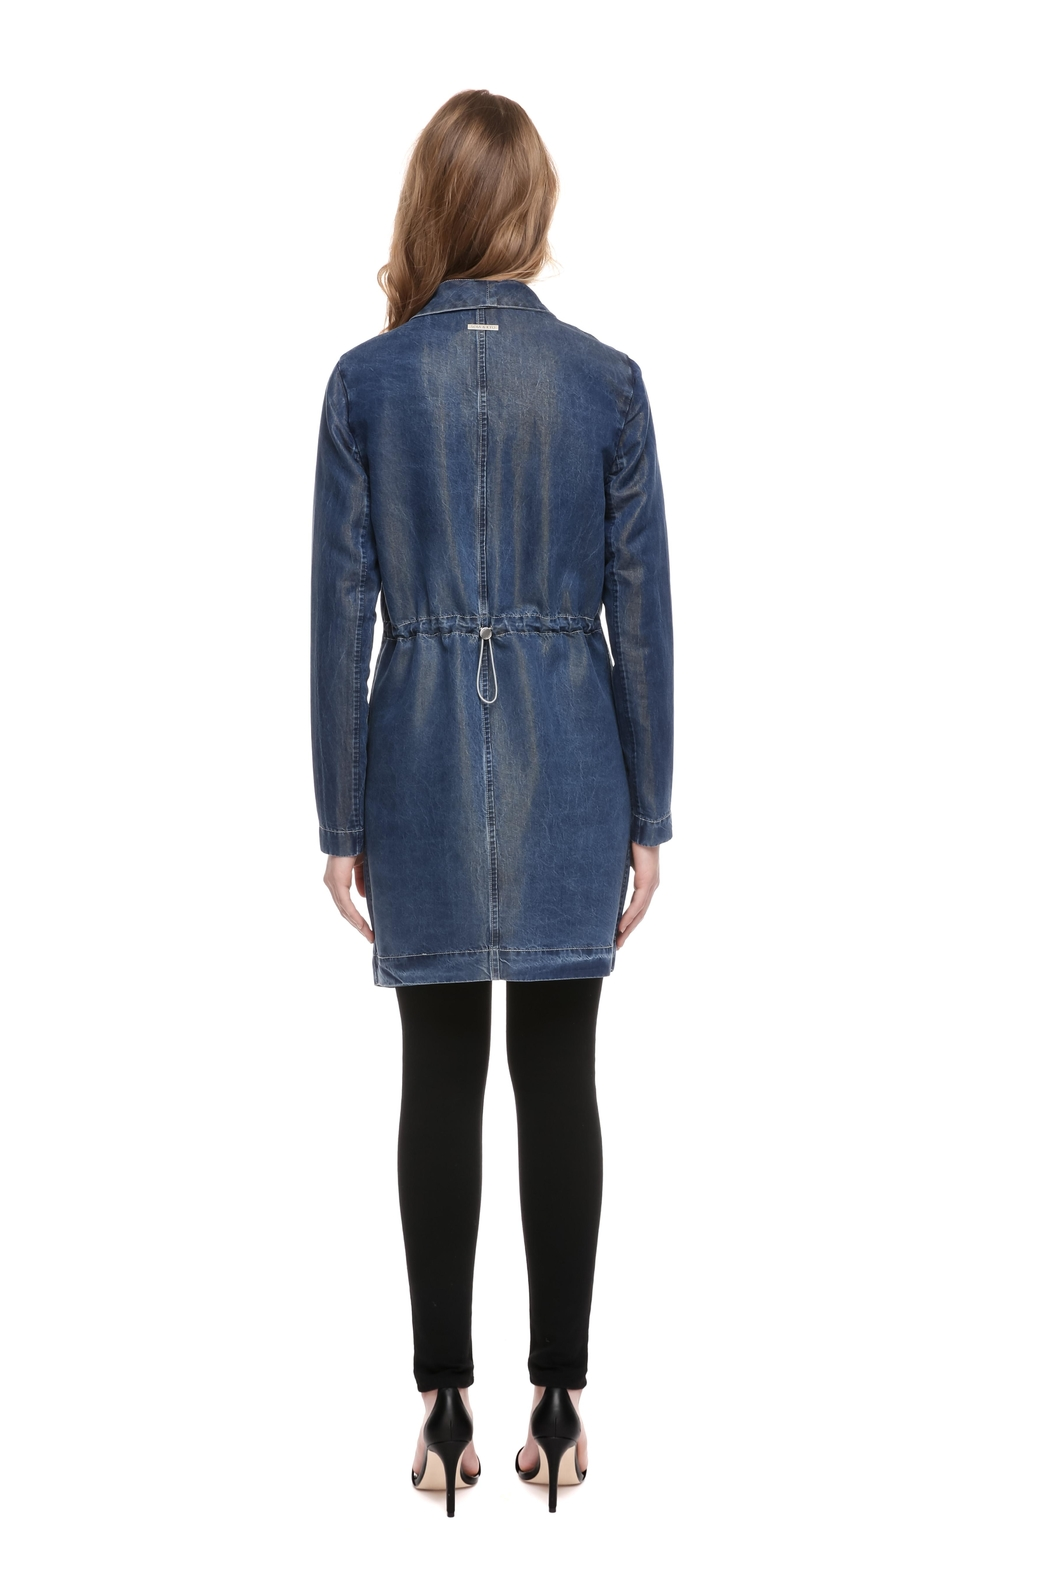 Soia & Kyo Stefie Denim Jacket - Back Cropped Image